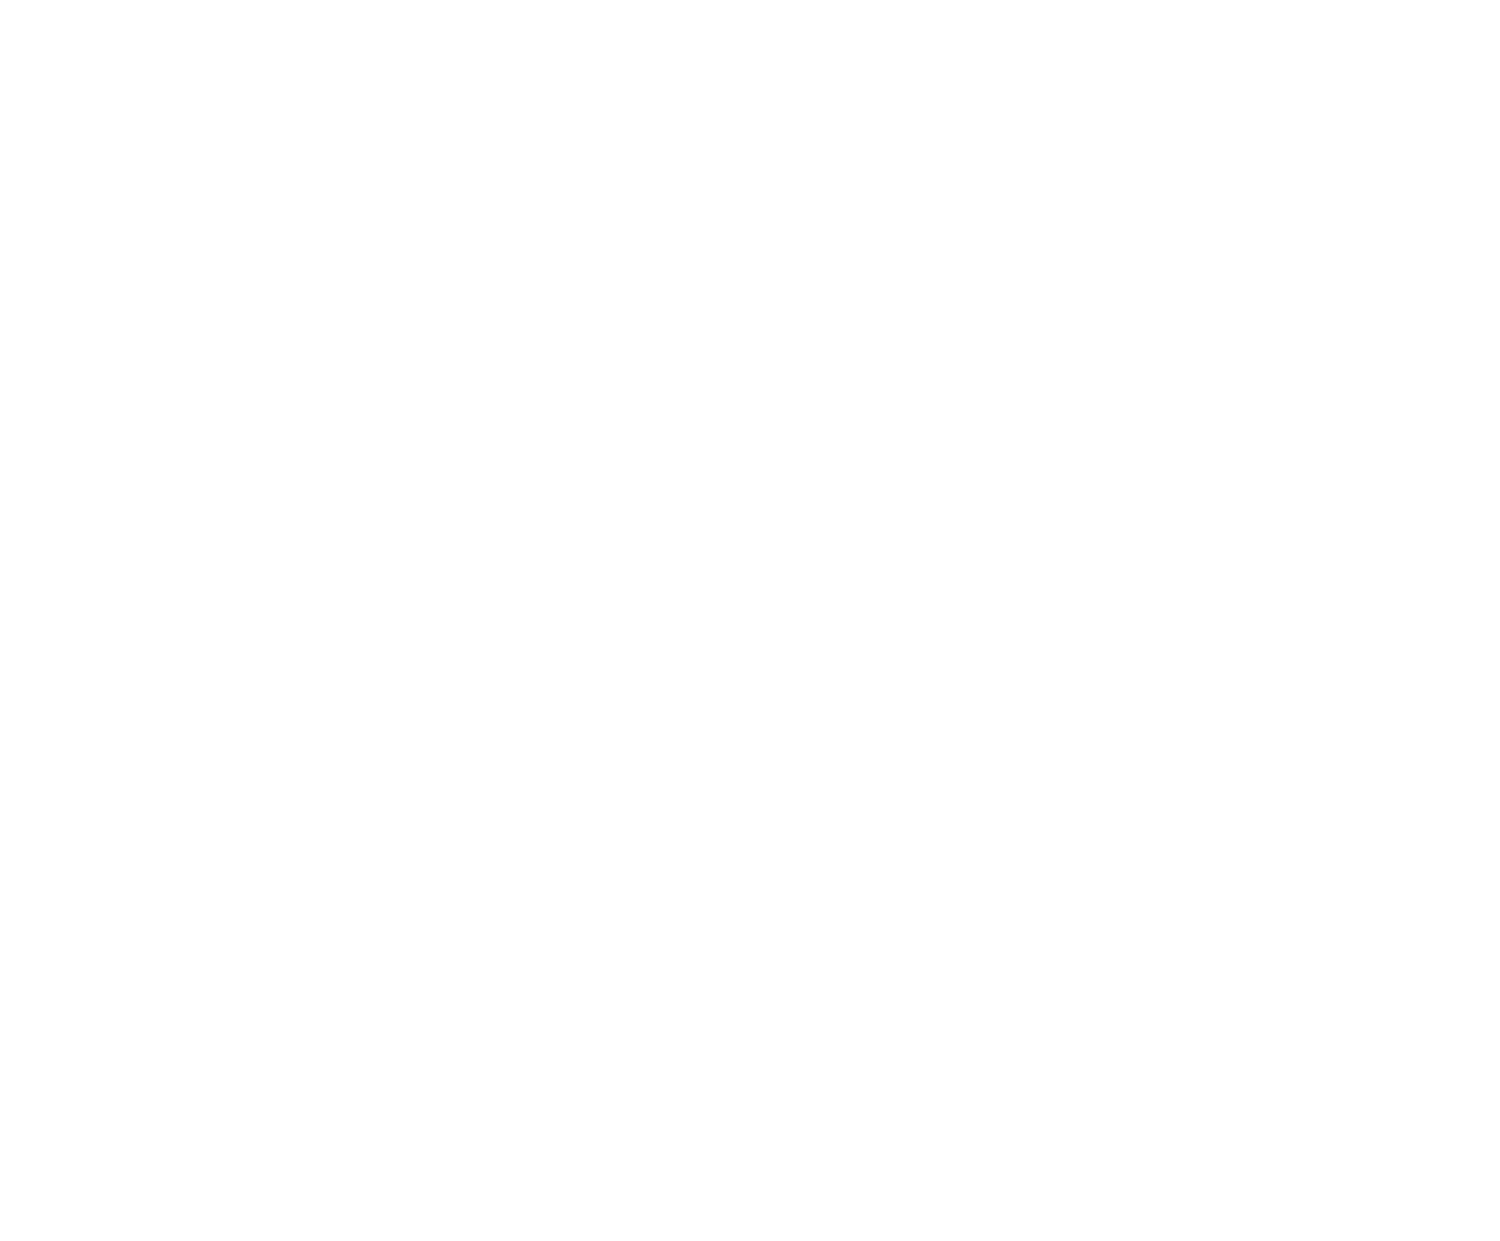 Artist Group Advertising